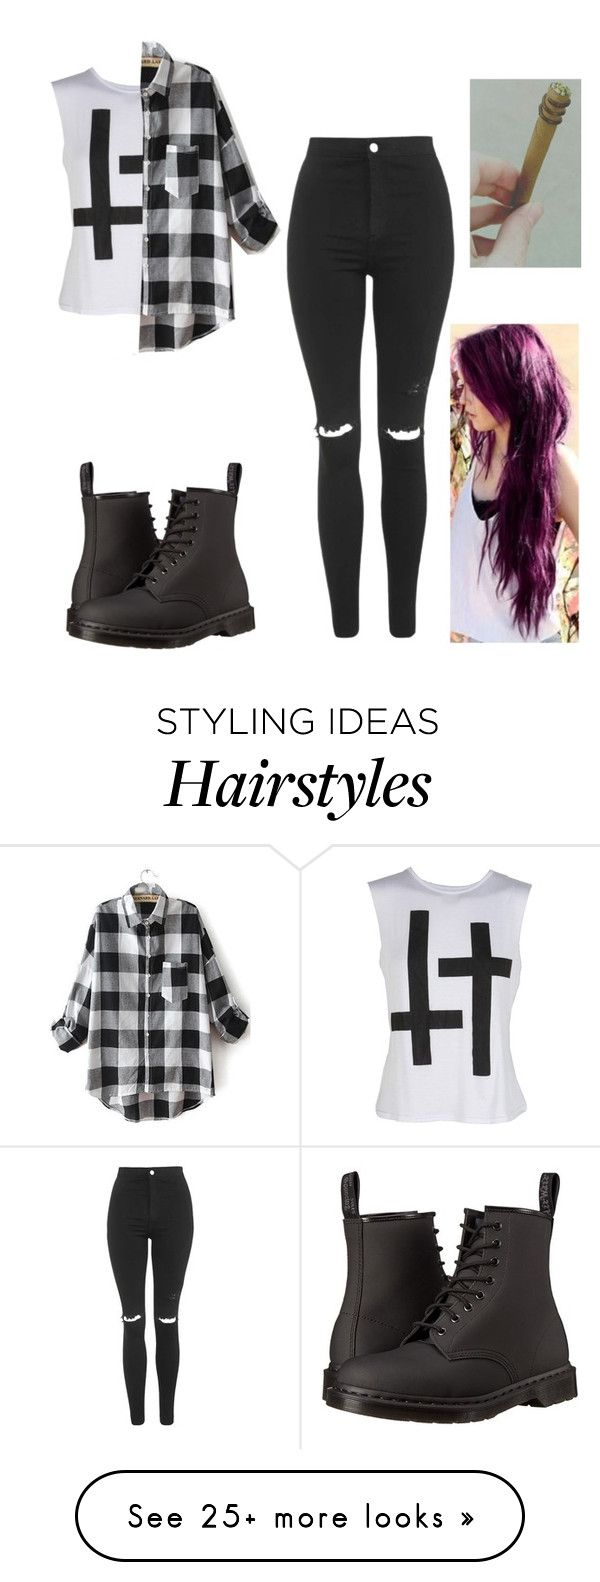 """"" by angelluvsluke on Polyvore featuring мода, Topshop и Dr. Martens"